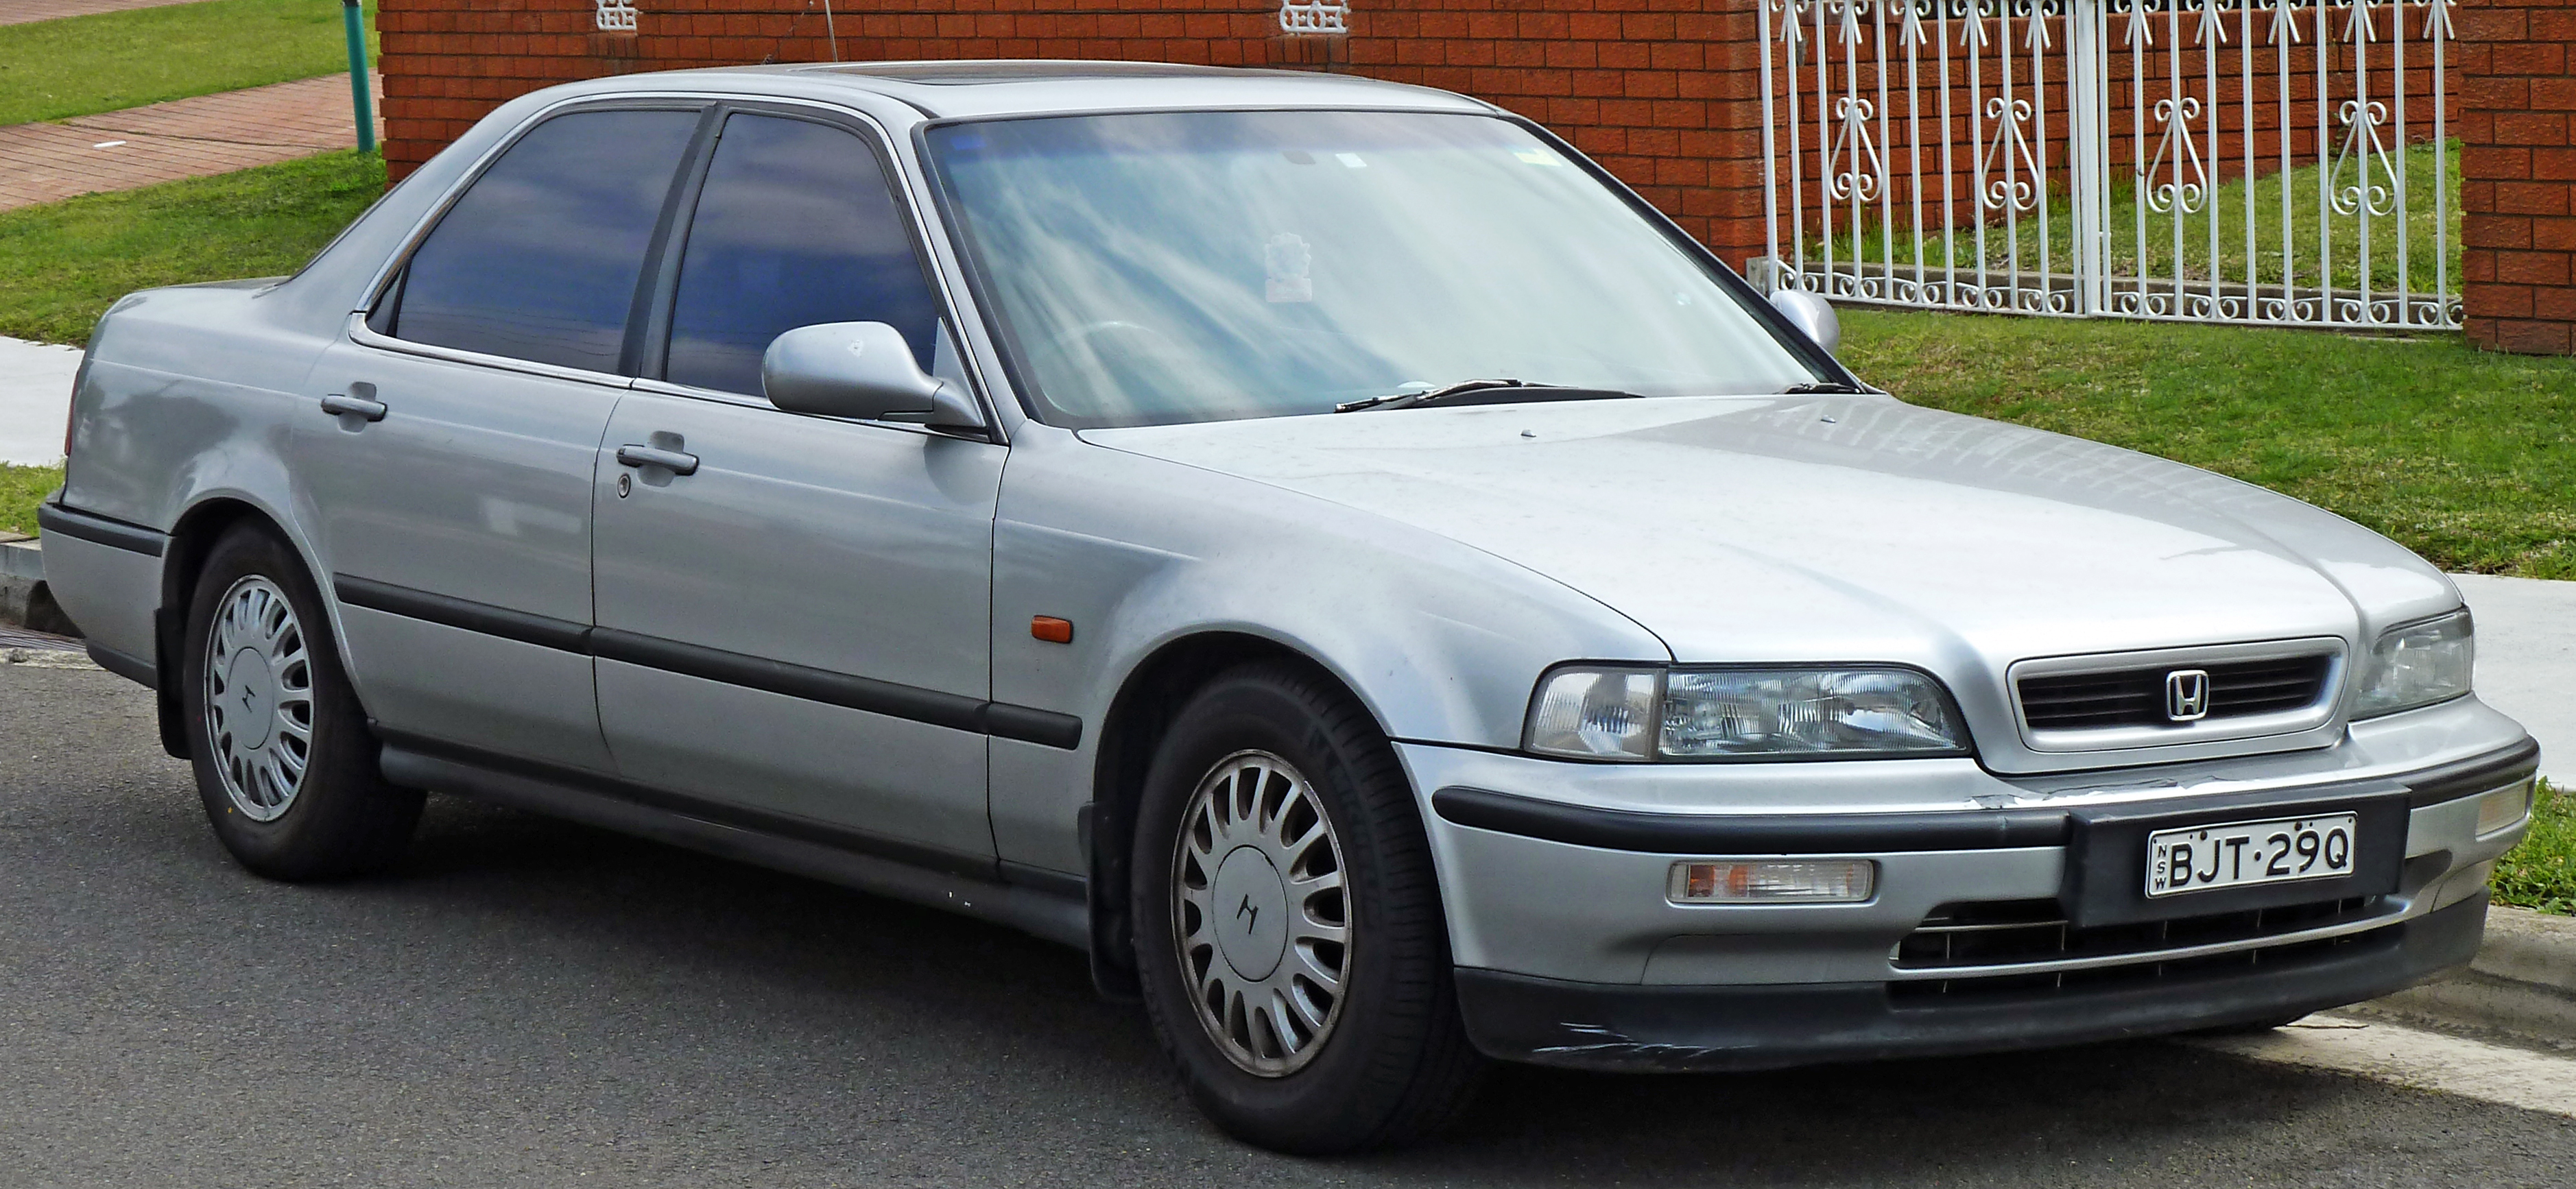 Cars honda legend